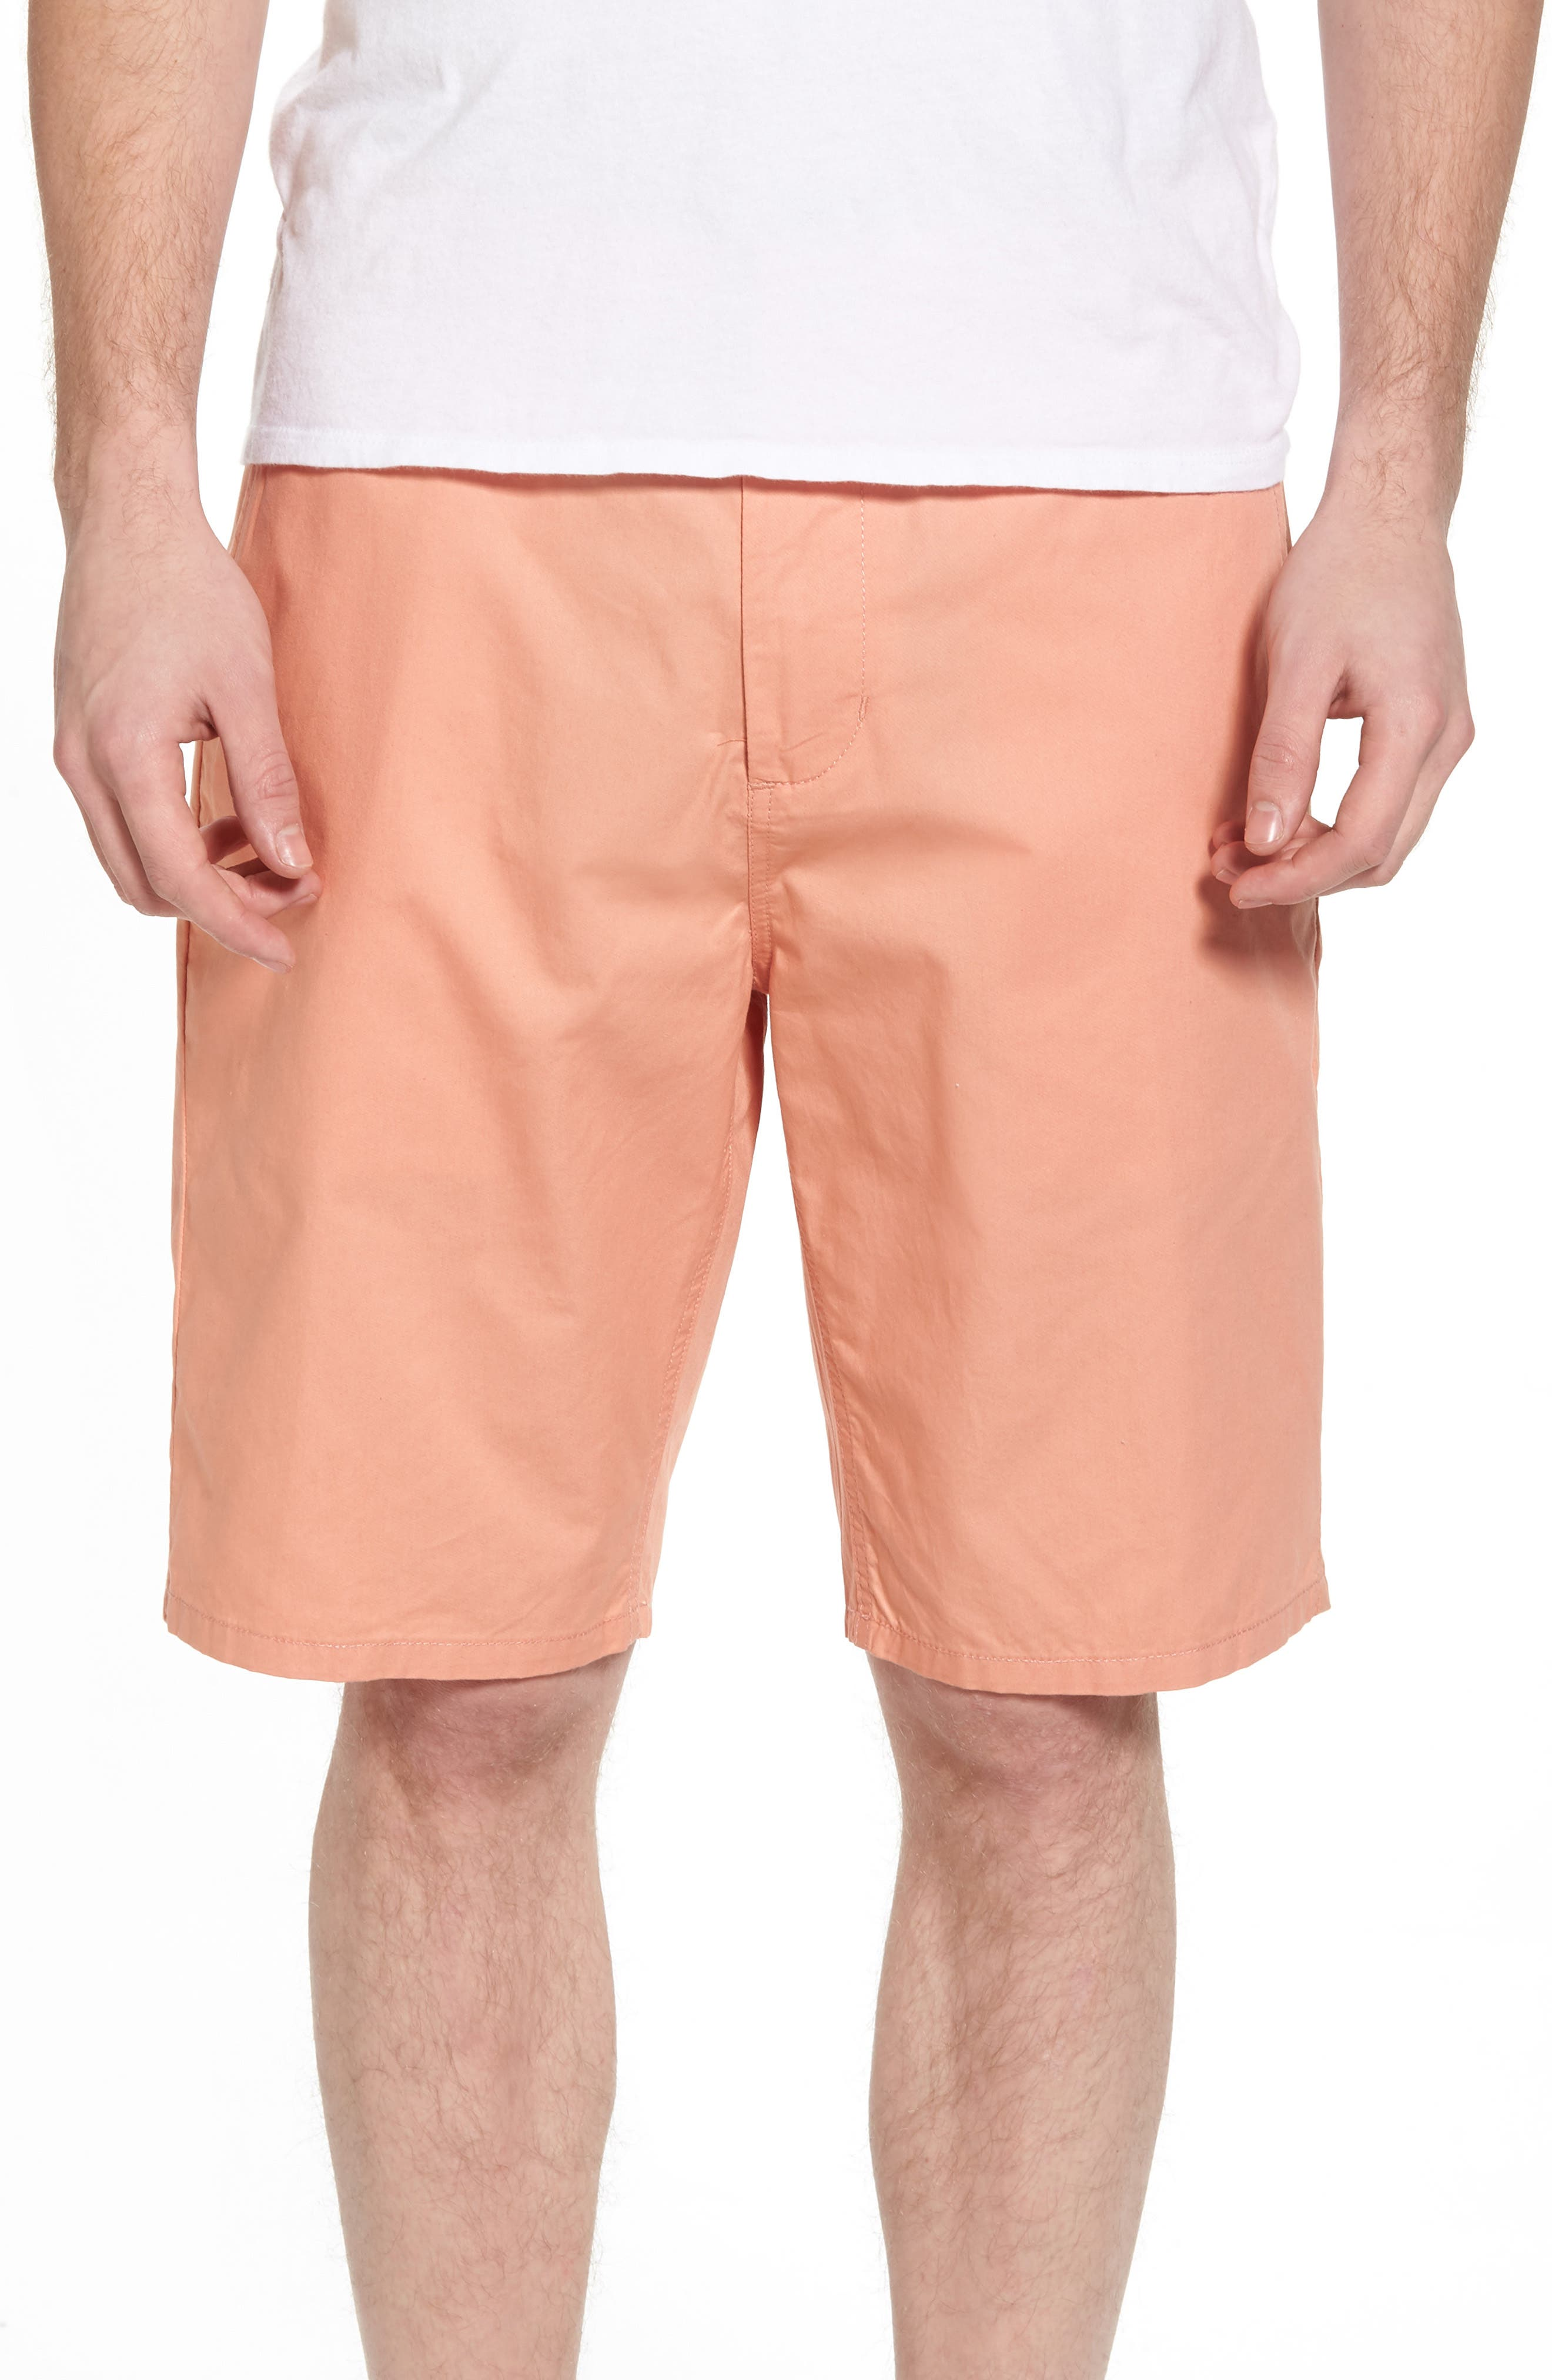 Straggler Light Shorts,                         Main,                         color, Dusty Rose